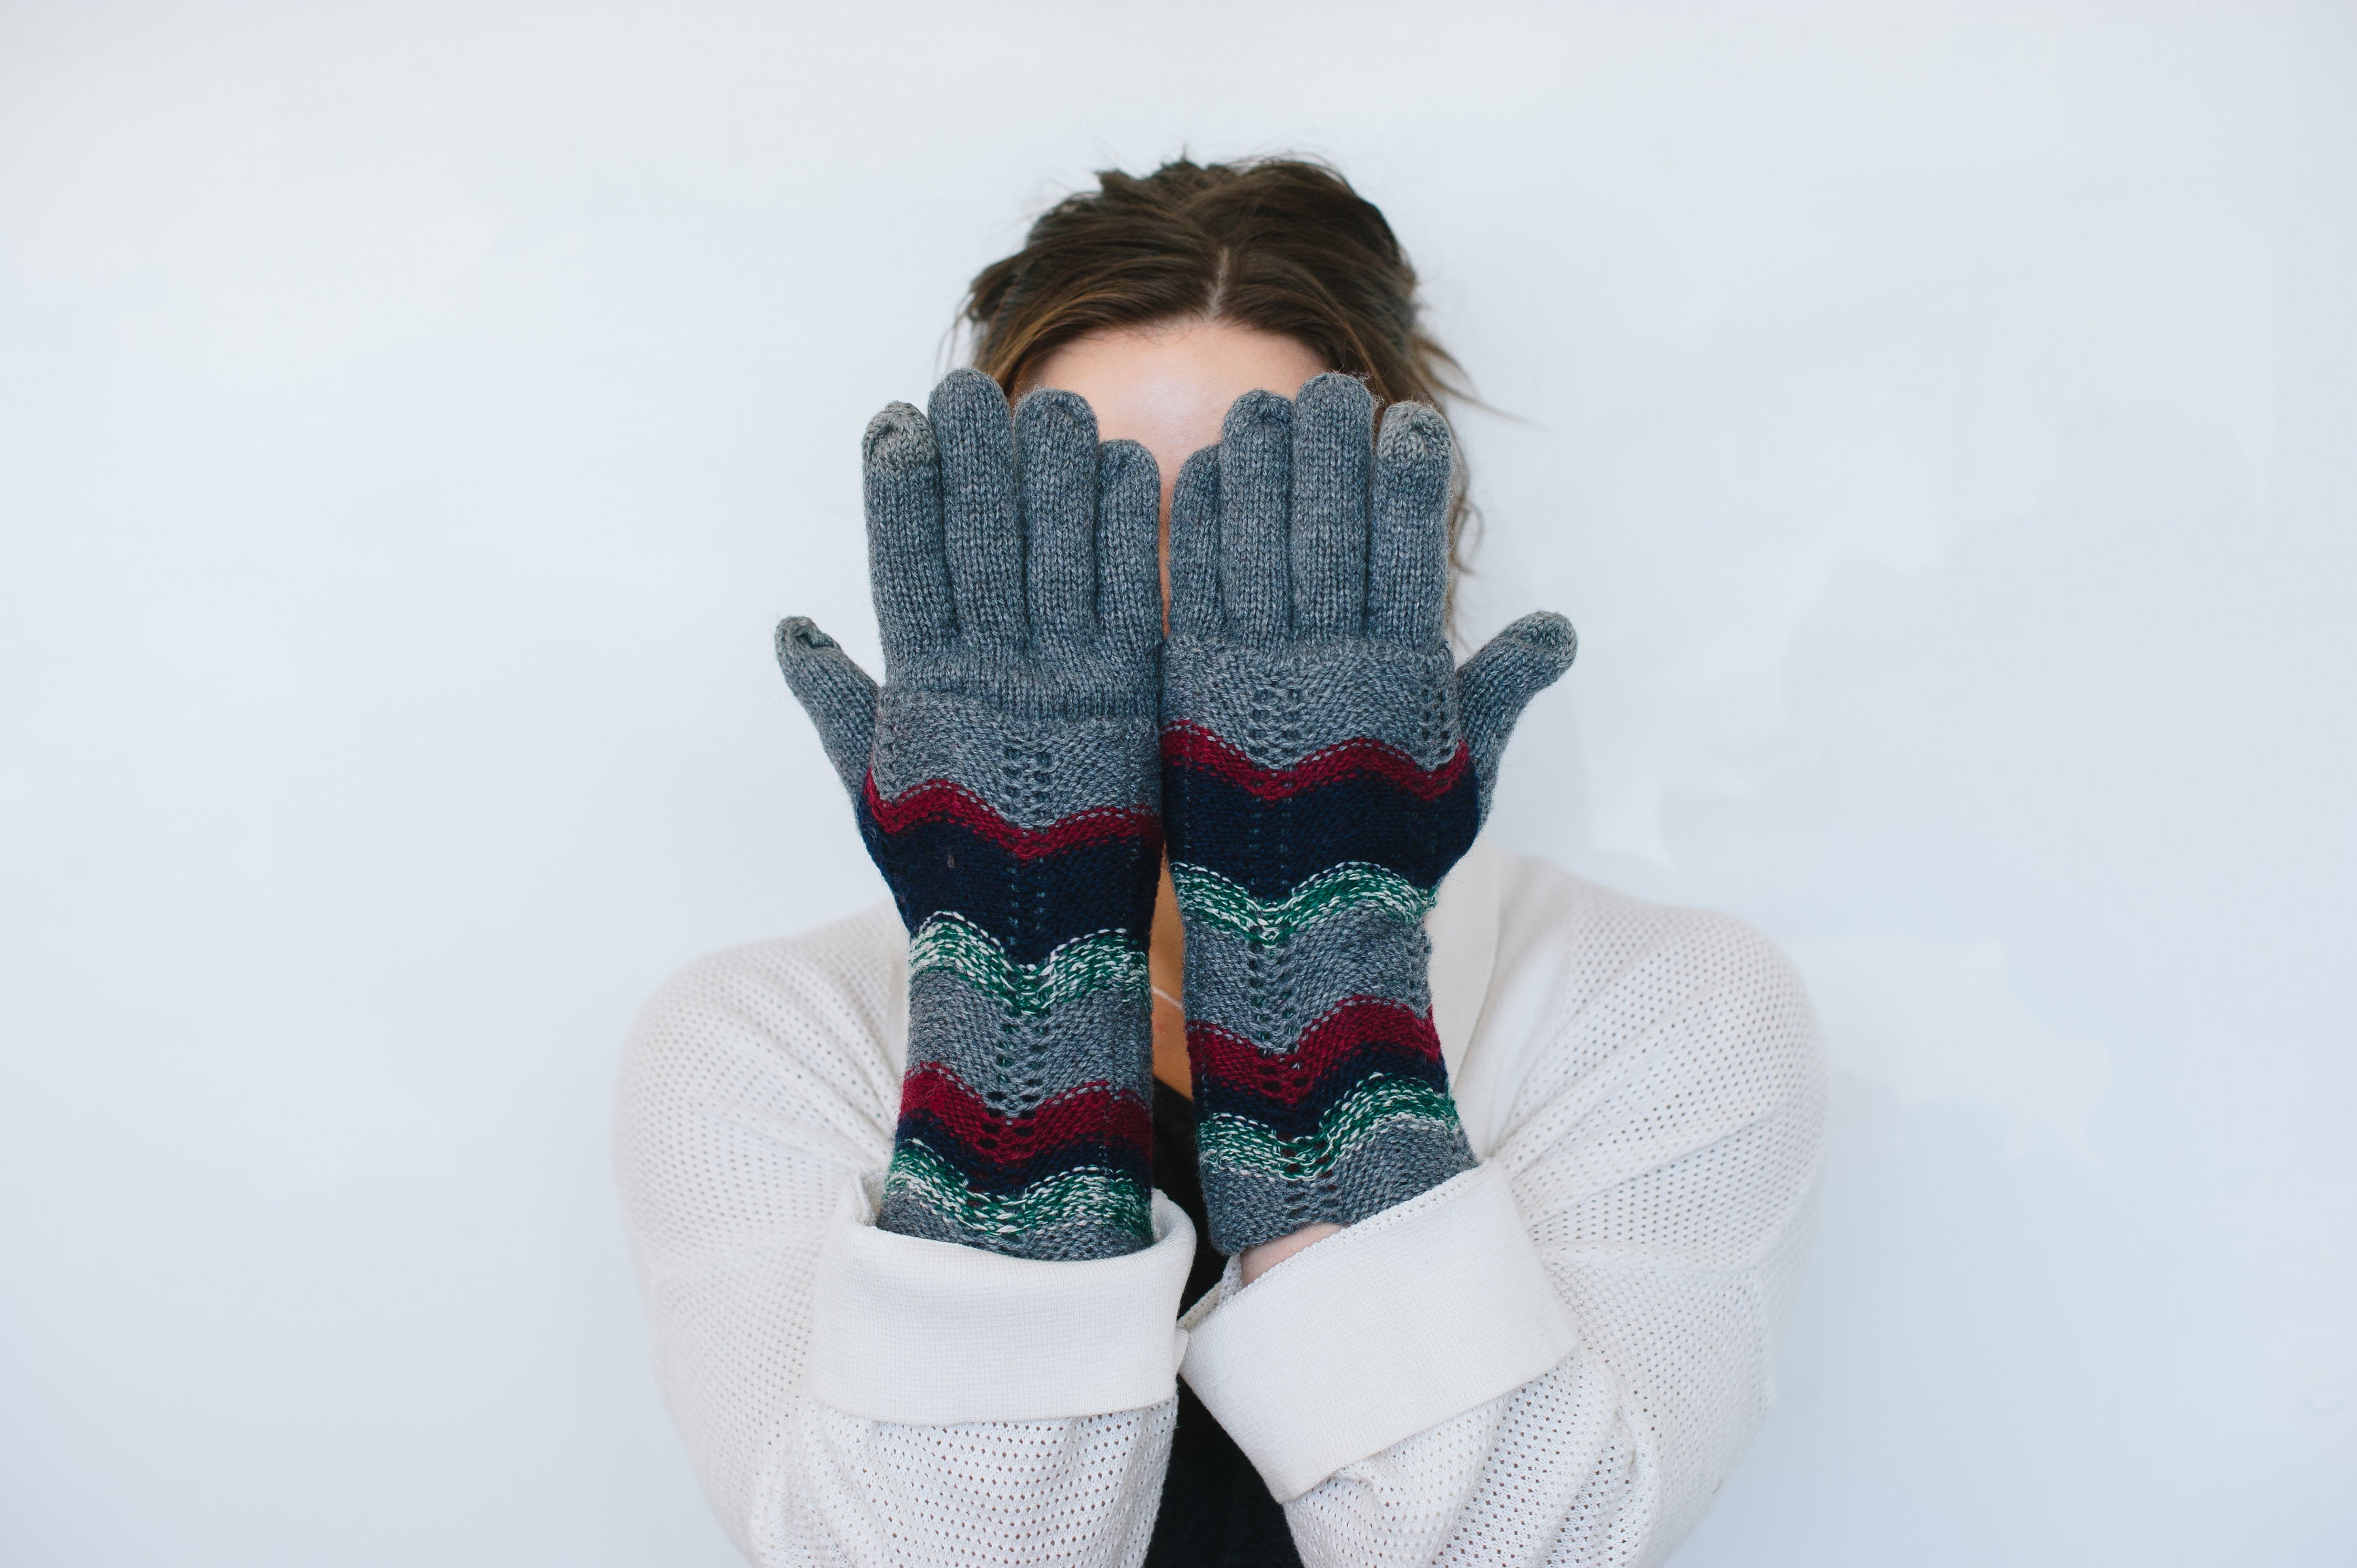 Beck & Boosh Accessories Knit Gloves with Long Cuff and Herring Bone Stripe Colored Pattern on Cuff Grey Knit On Model